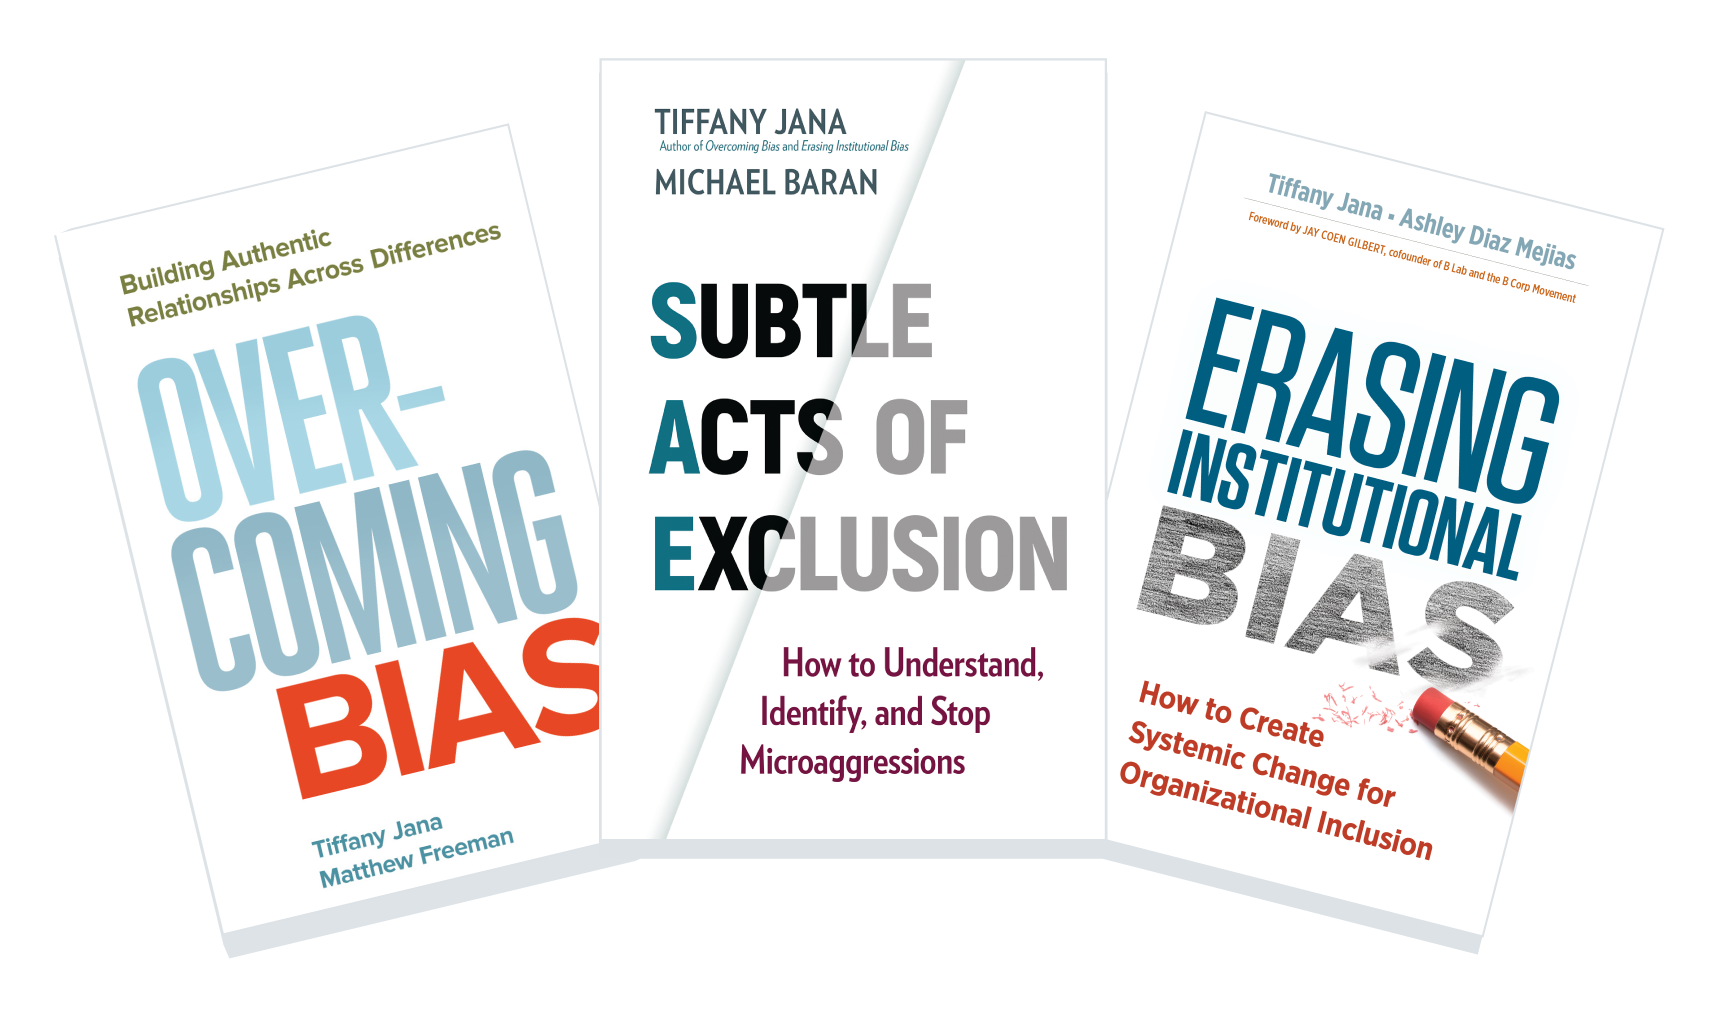 three books on overcoming bias, subtle acts of exclusion, and erasing institutional bias